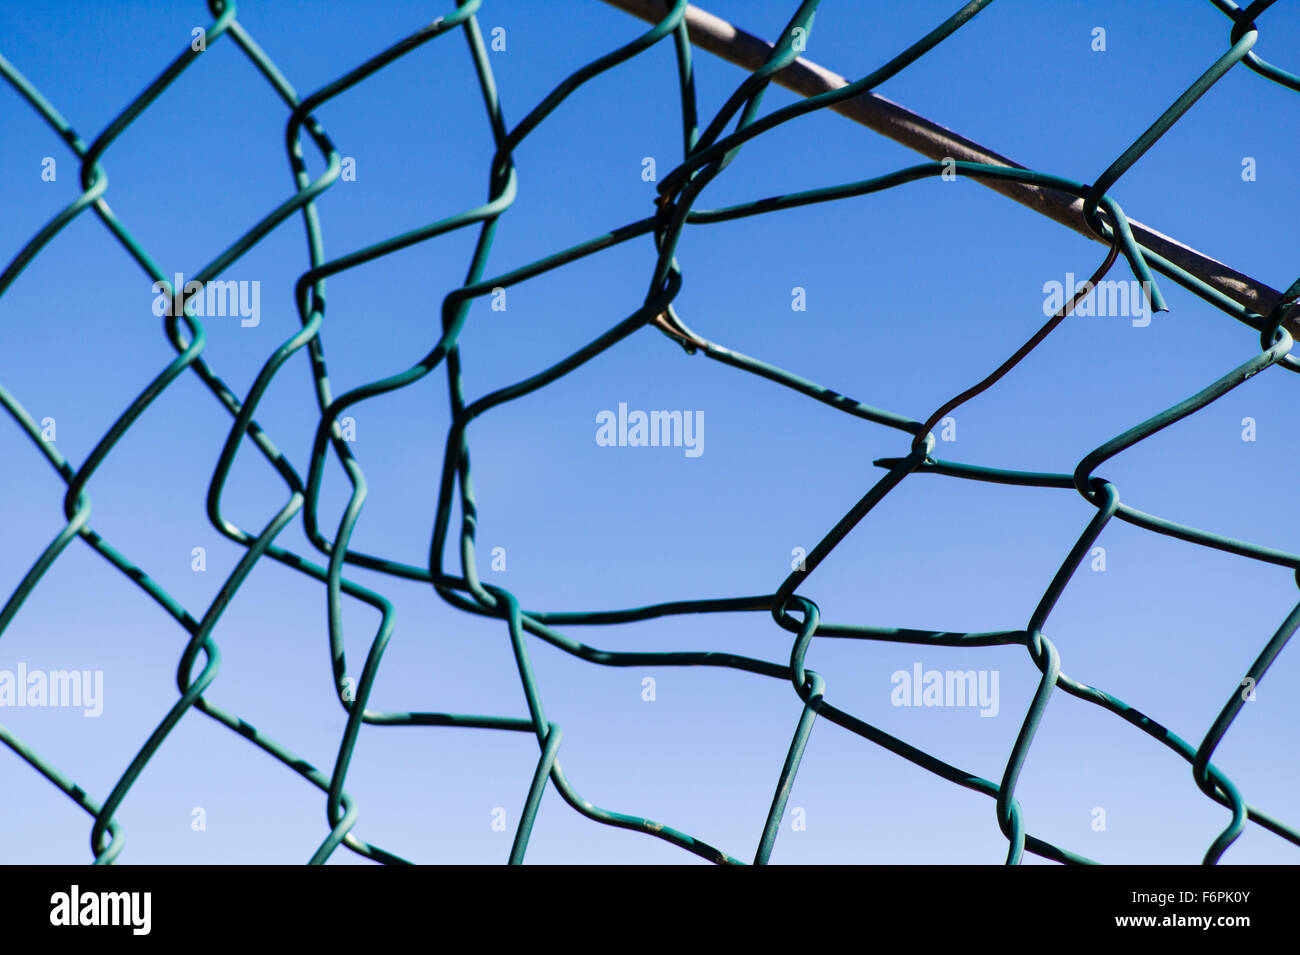 Wire Mesh Fence Hole Stock Photos & Wire Mesh Fence Hole Stock ...